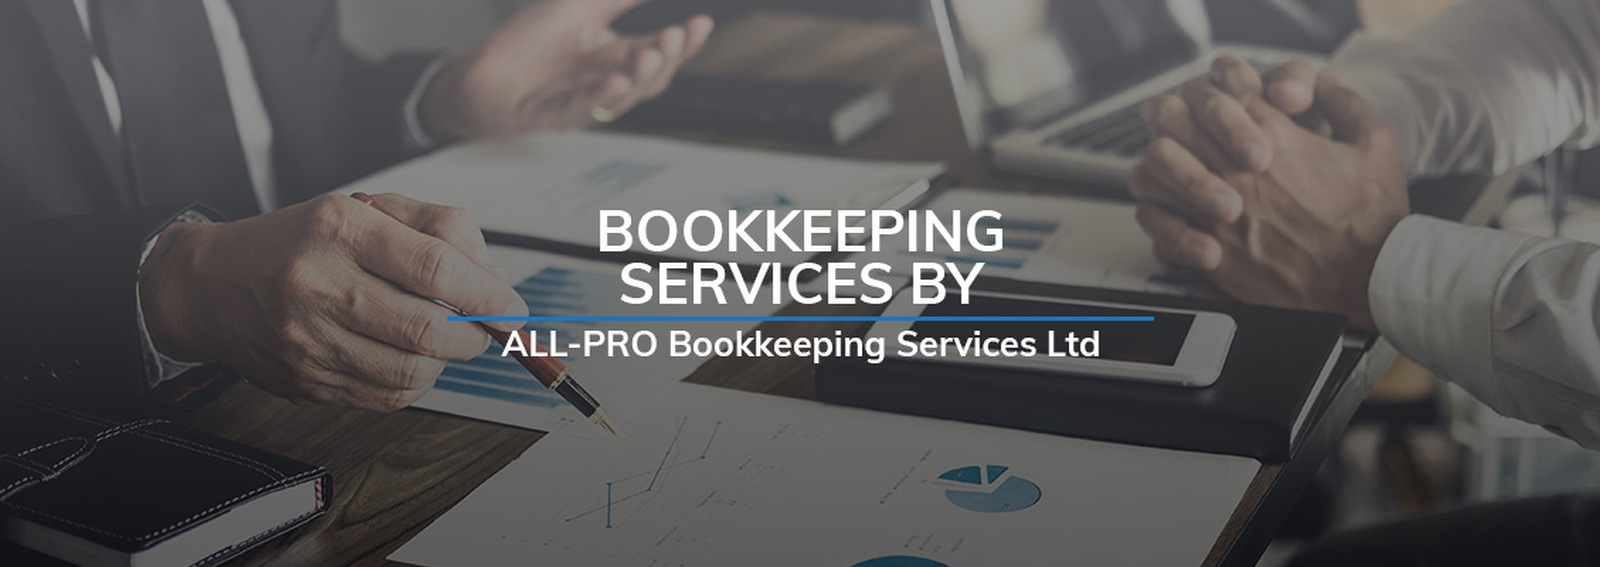 Bookkeeping Services in Calgary, AB